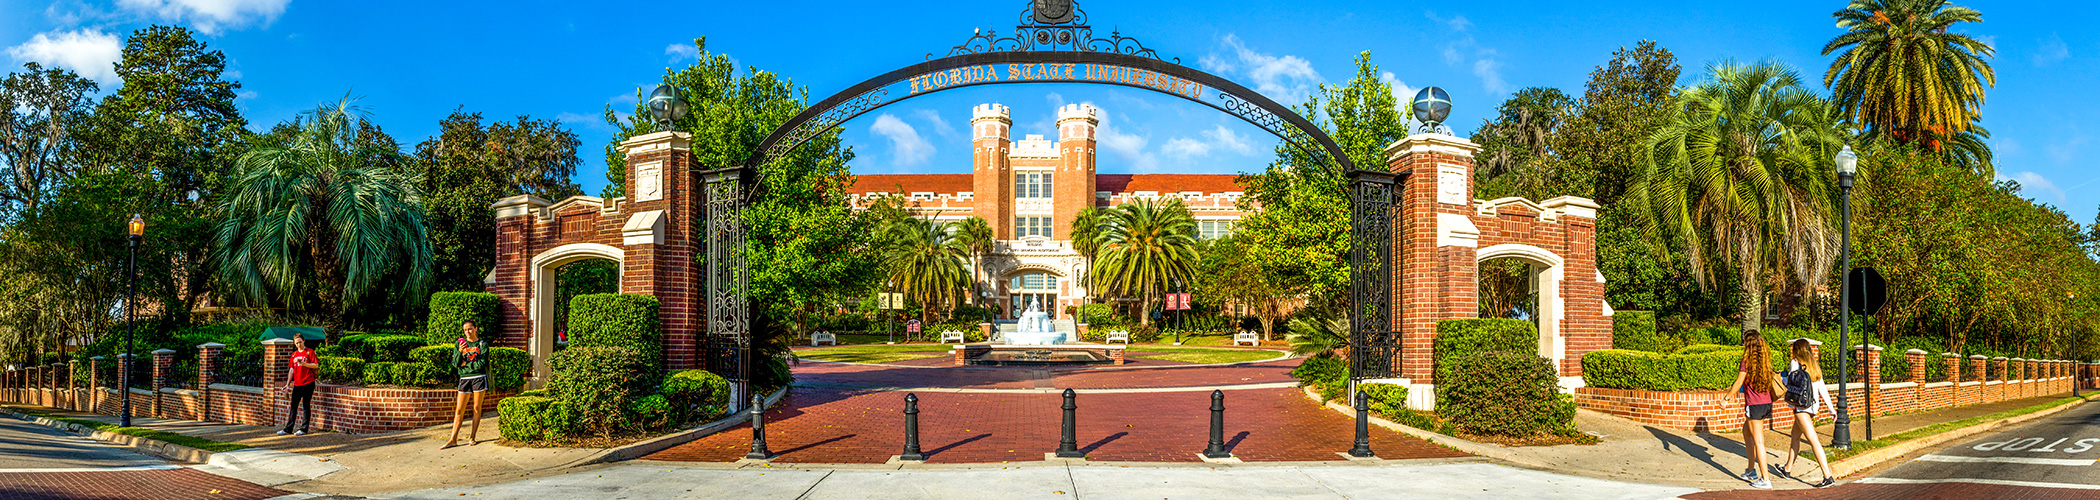 Entrance to Florida State University